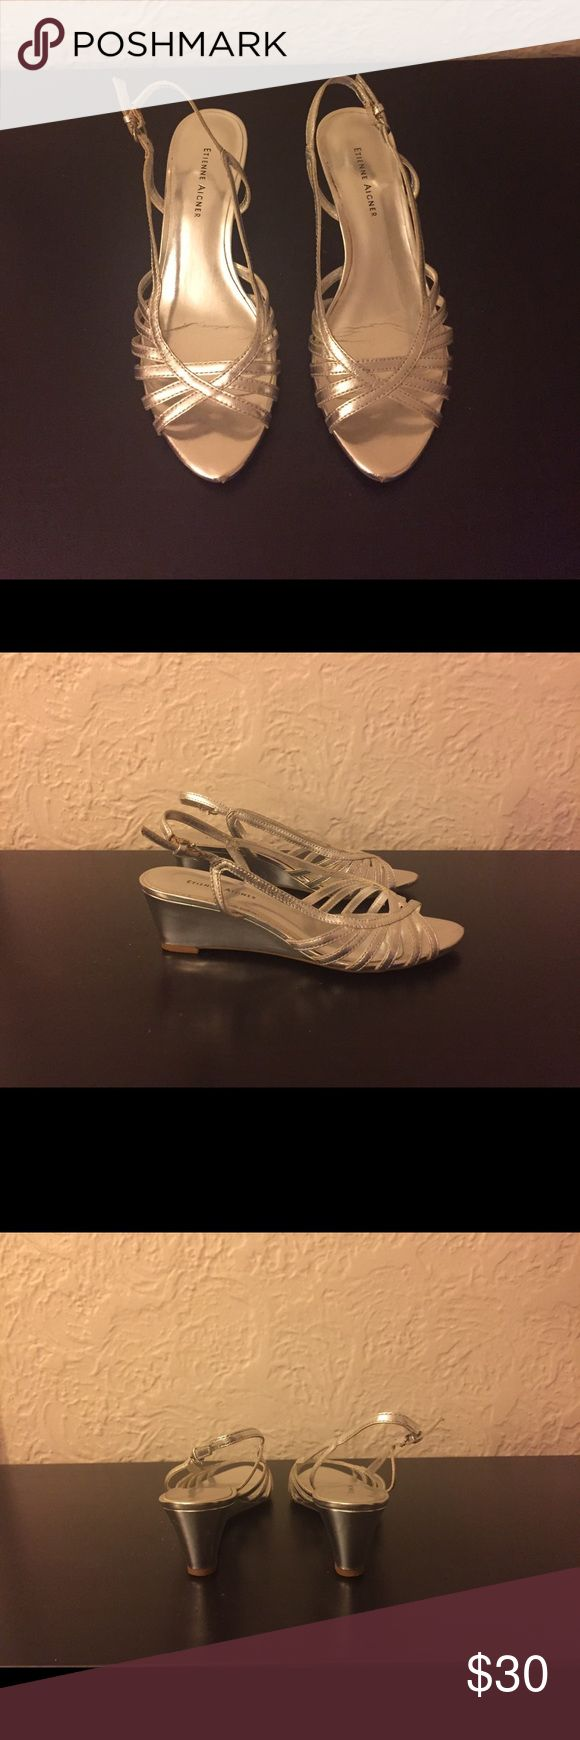 """Etienne Aigner Silver Wedge Sandals size 6 Slightly used/worn Etienne Aigner silver wedge sandals in size 6.  Leather upper.  Approx 2"""" heel.  Super cute and very comfortable. Etienne Aigner Shoes Wedges"""